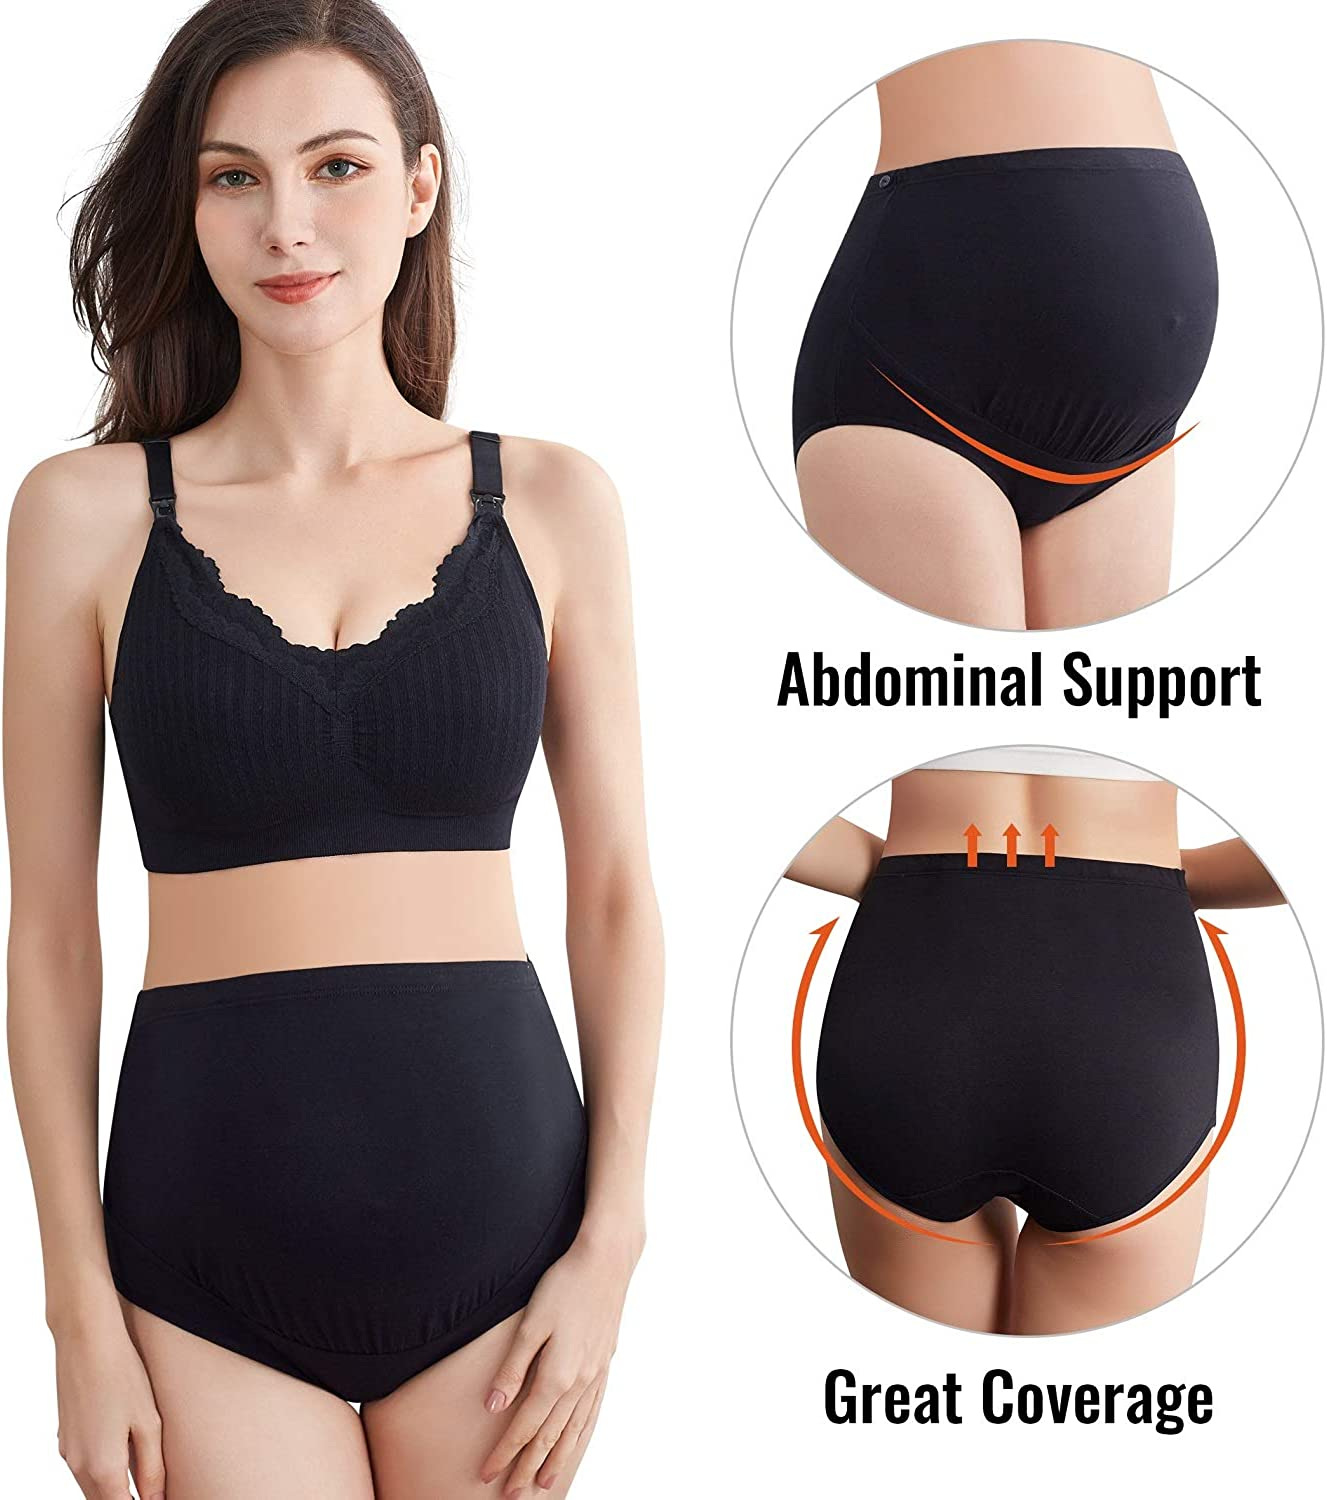 S-4XL Mama Cotton Womens Over The Bump Maternity Underwear High Waist Maternity Panties 5 Pack